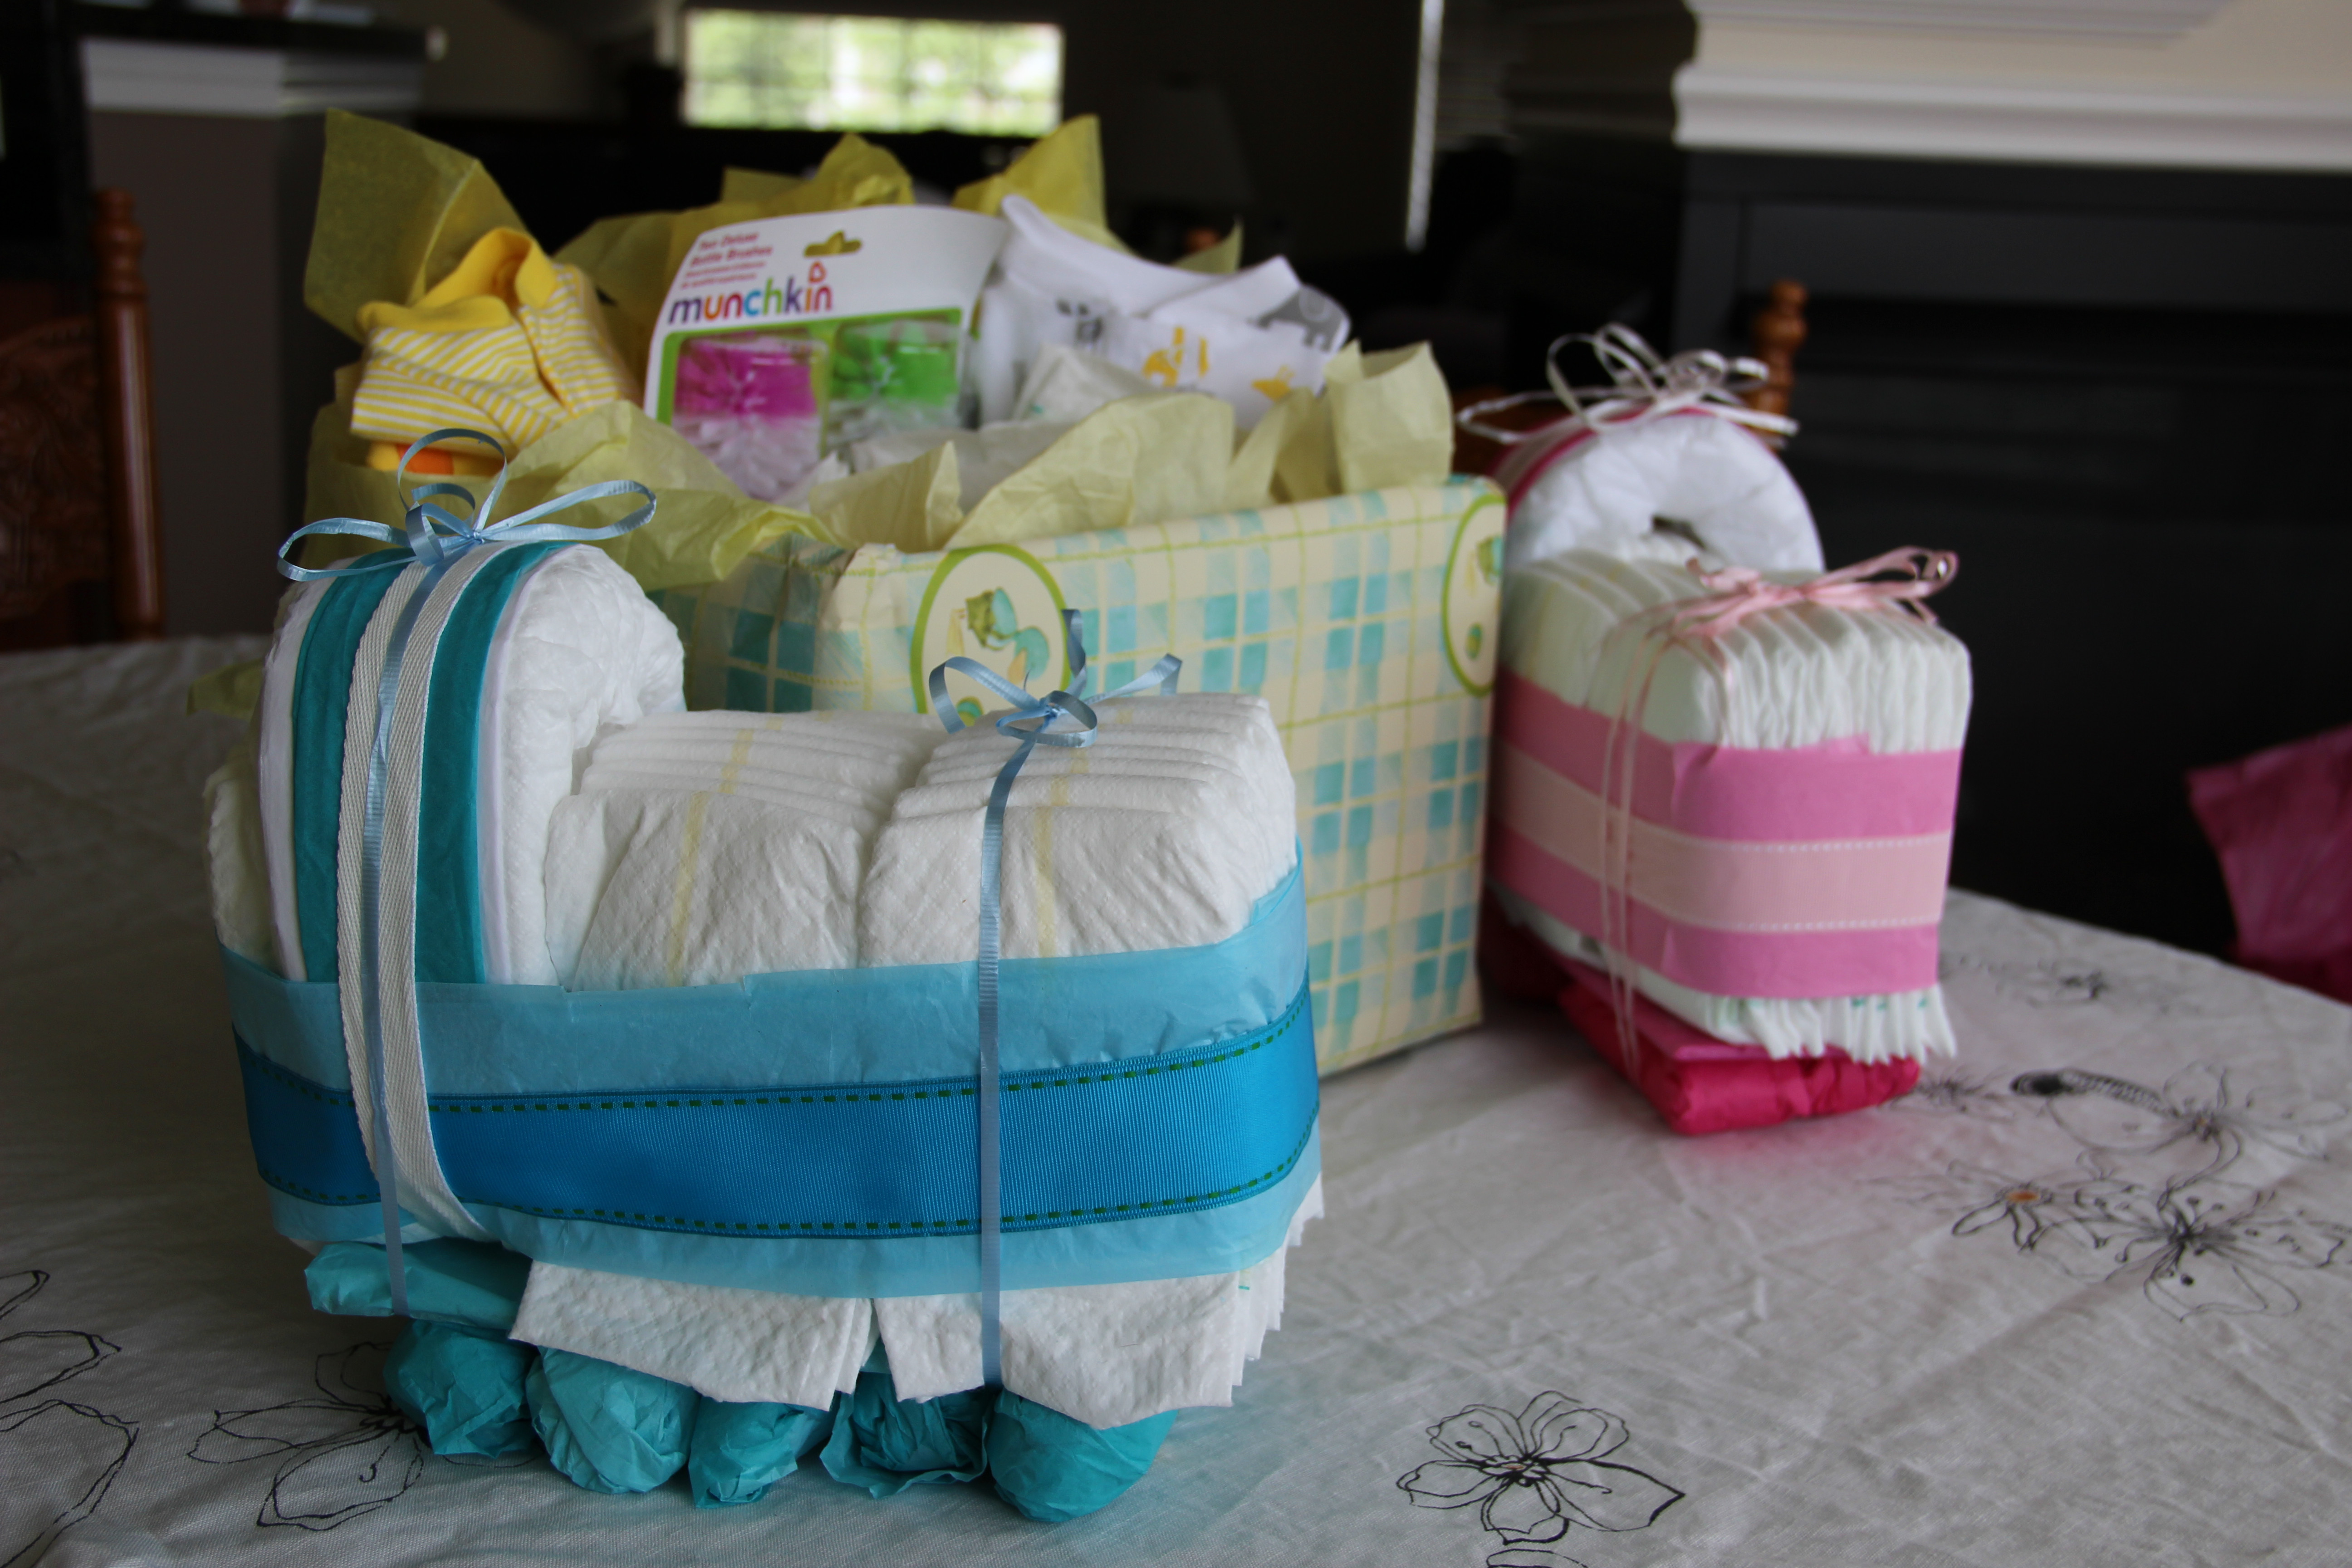 Best ideas about Baby Boy Shower Gift Ideas . Save or Pin The Importance of Being Cleveland Now.